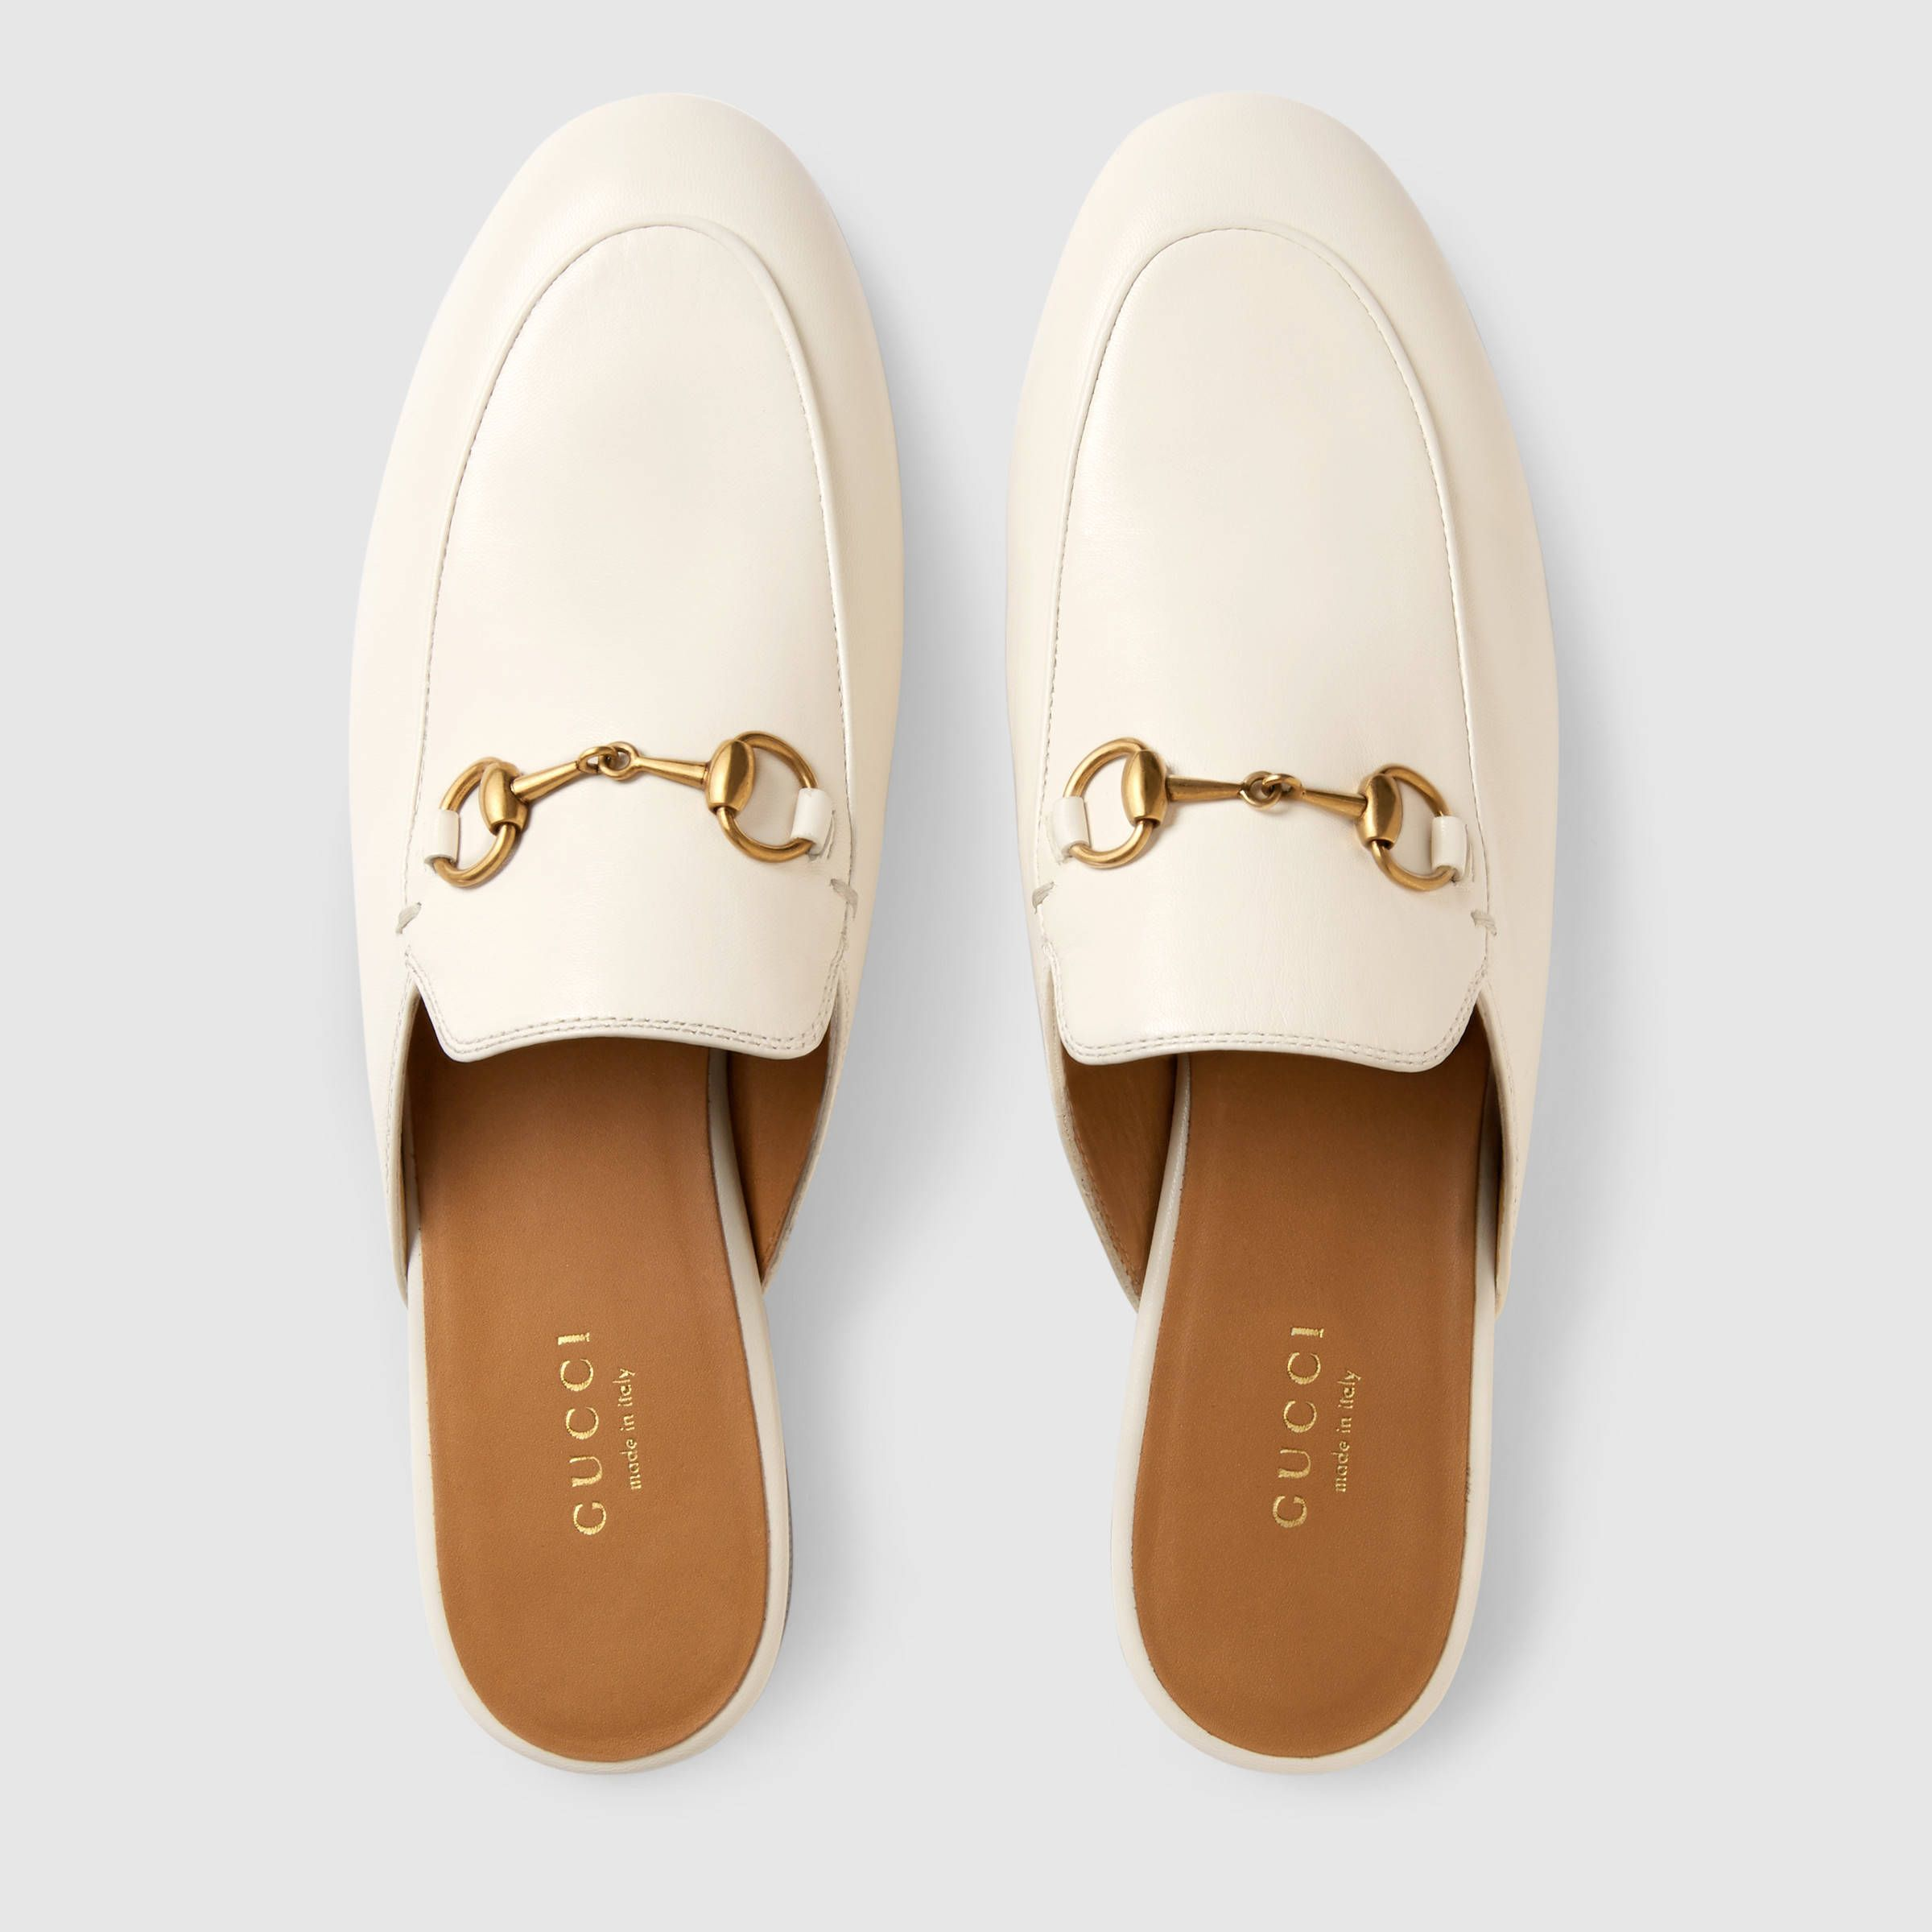 b7a06882595 Gucci Princetown leather slipper Detail 3